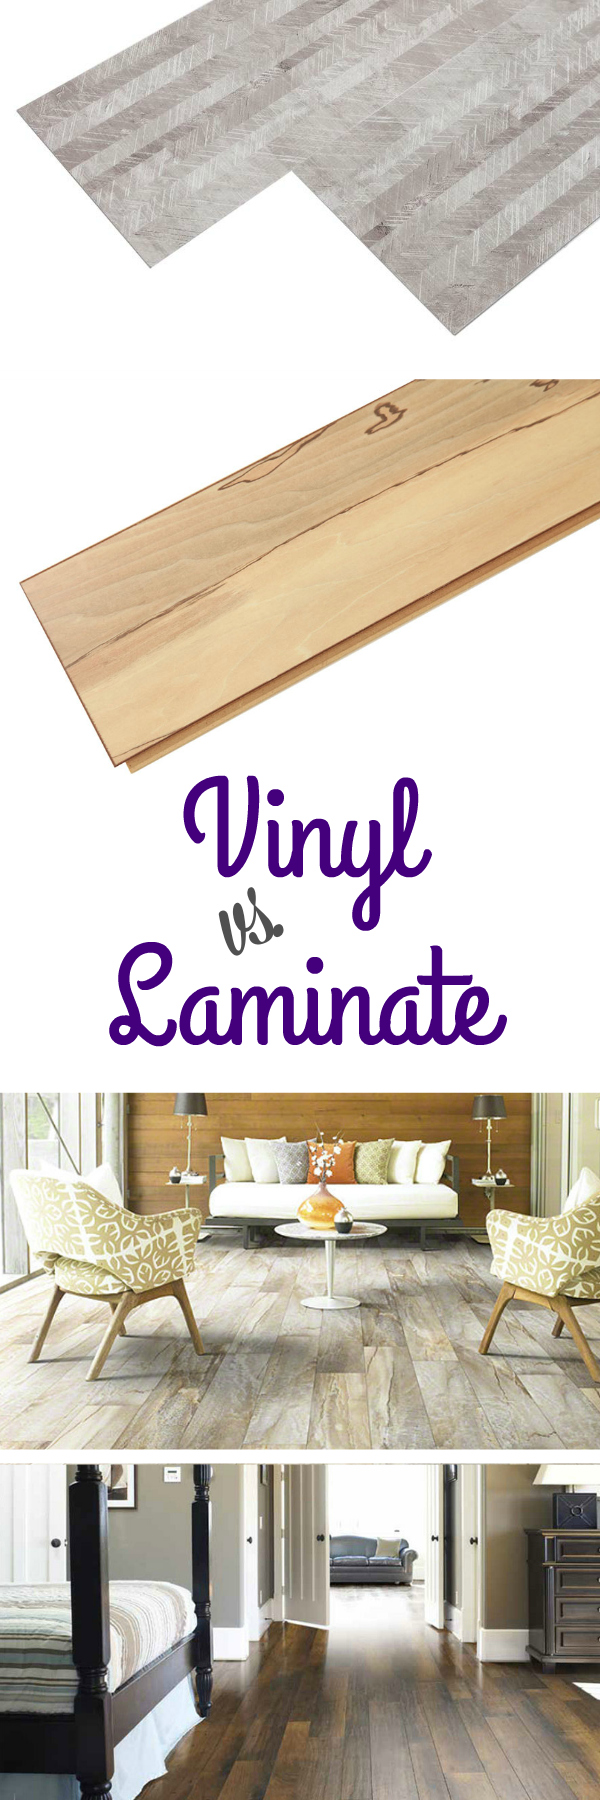 Pros And Cons Of Laminate Flooring collection in vinyl plank flooring pros and cons laminated flooring stimulating vinyl laminate flooring vinyl Laminate Flooring Many People Dont Know The Difference Between Vinyl